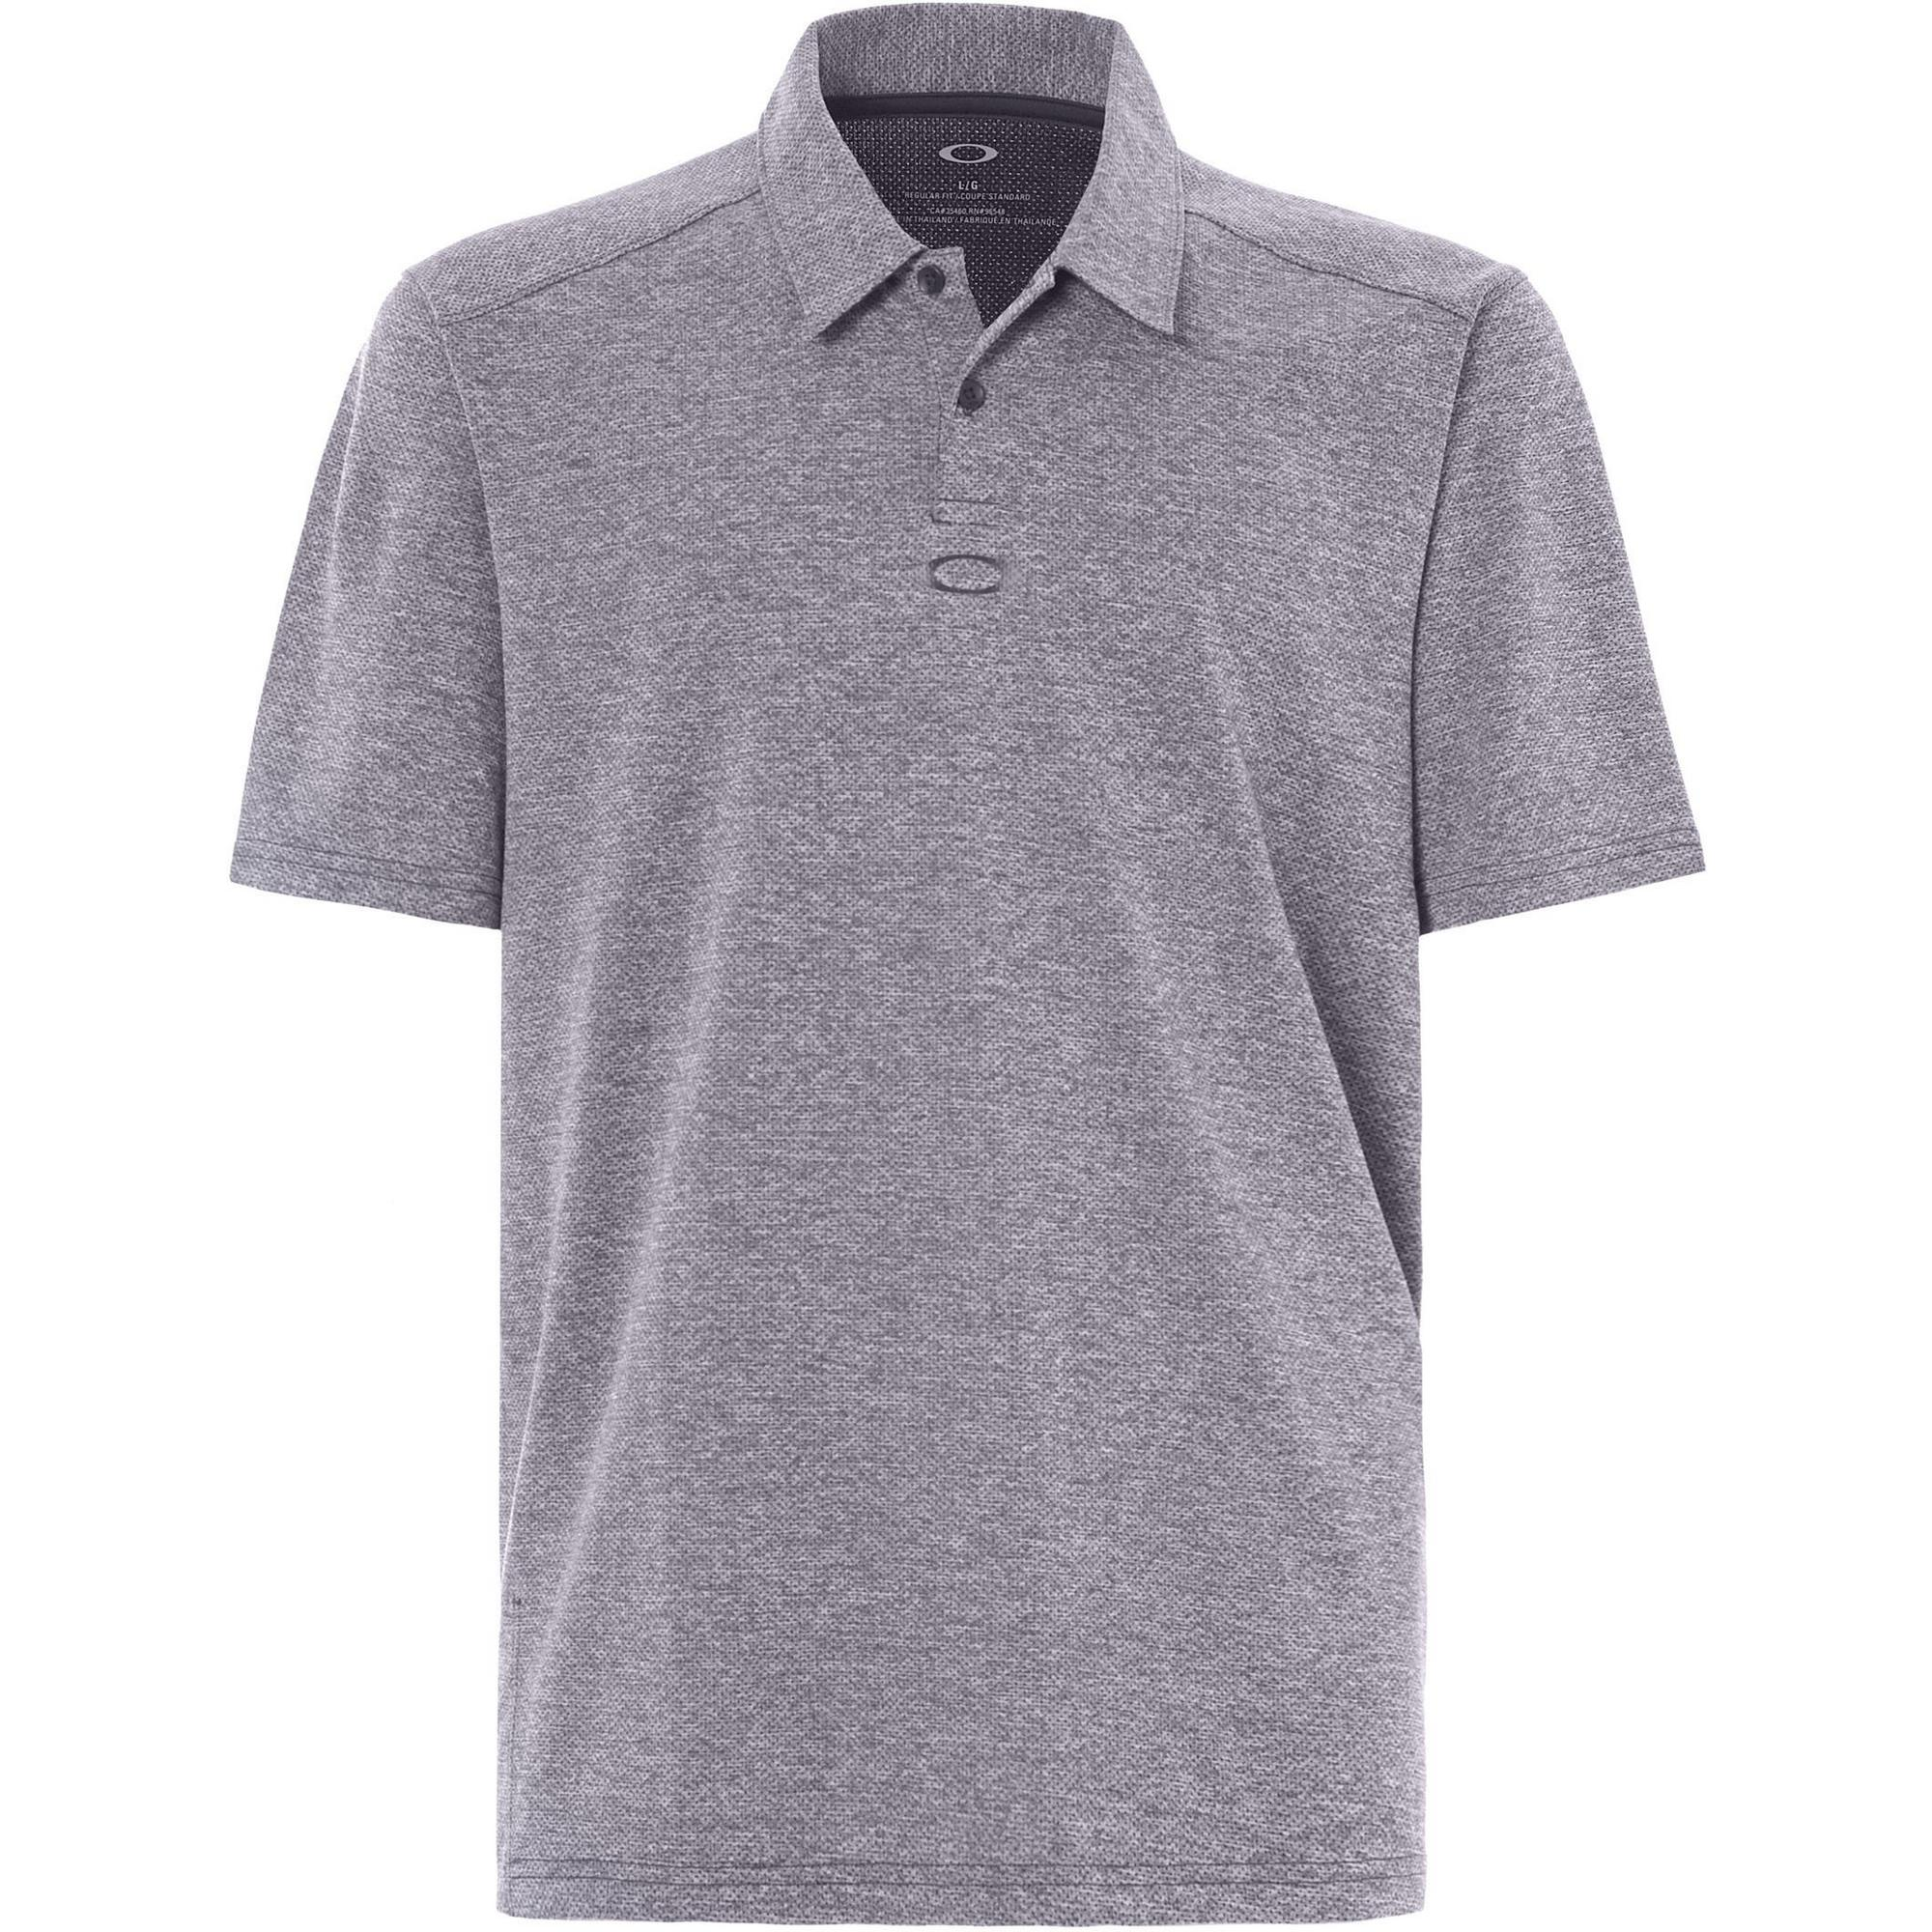 Men's Aero Ellipse Short Sleeve Polo